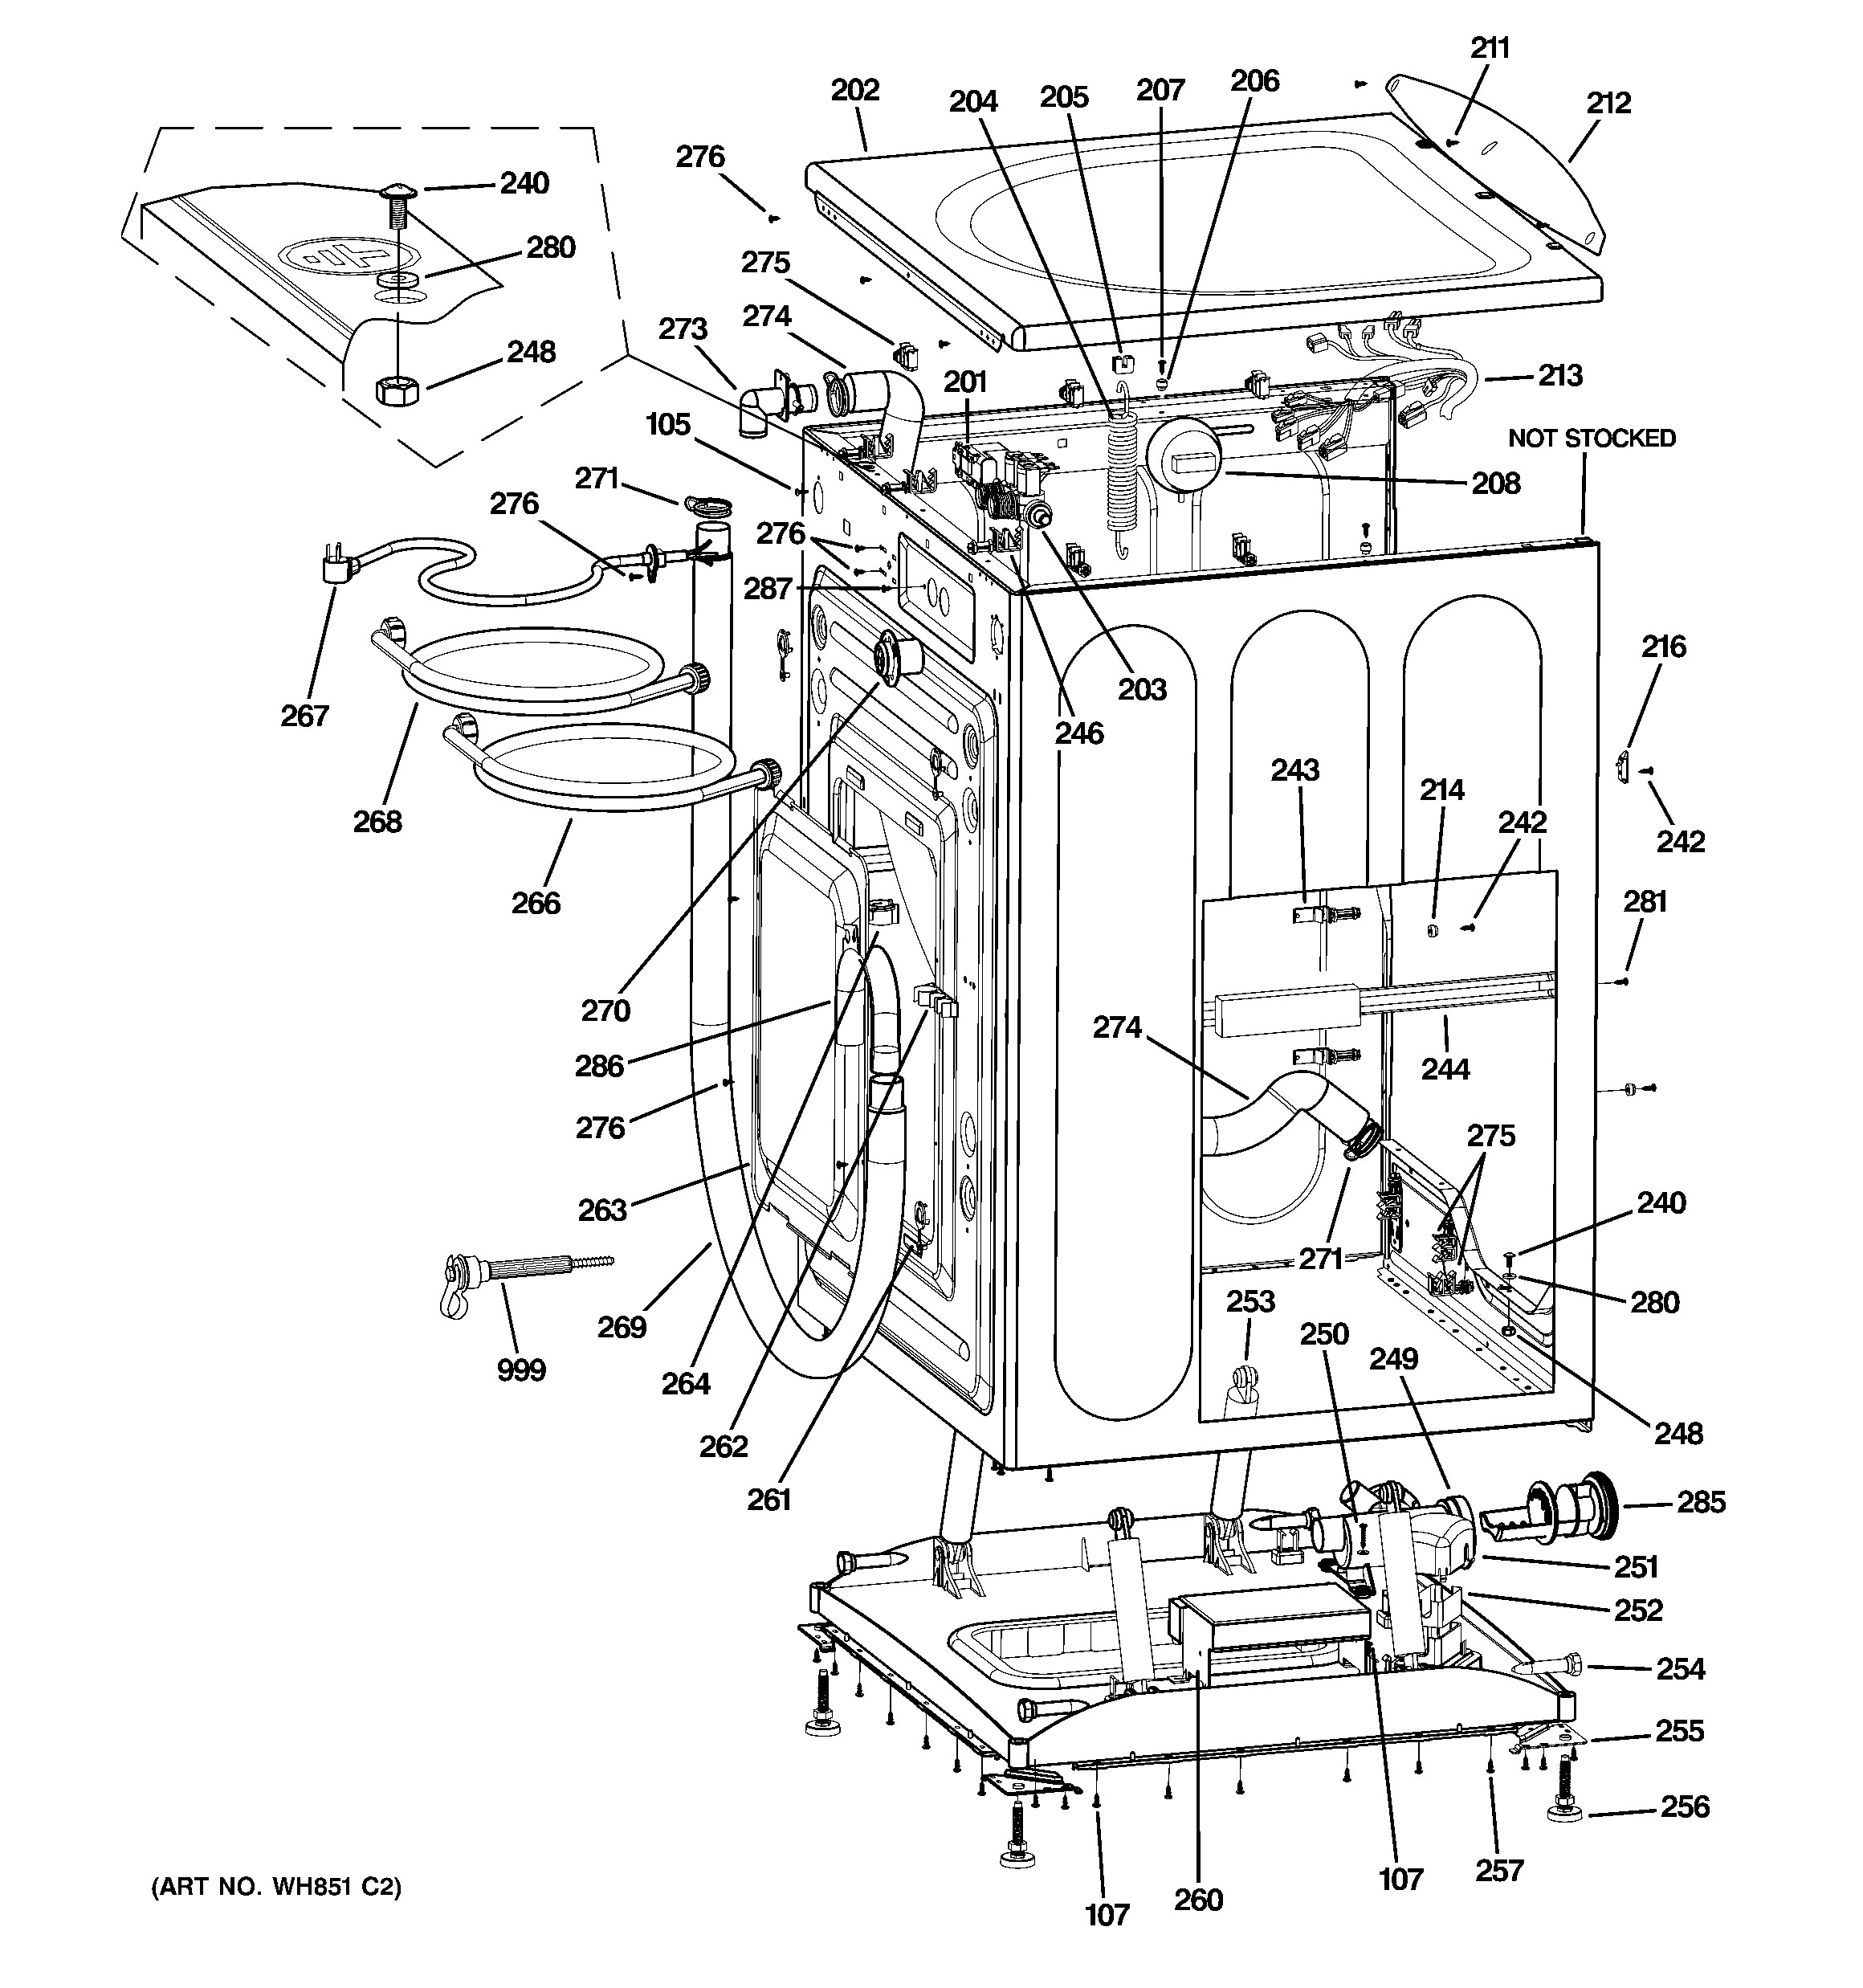 Diagram Of Front Suspension Ge Washer Parts Model Wcvh6800j0gg Of Diagram Of Front Suspension